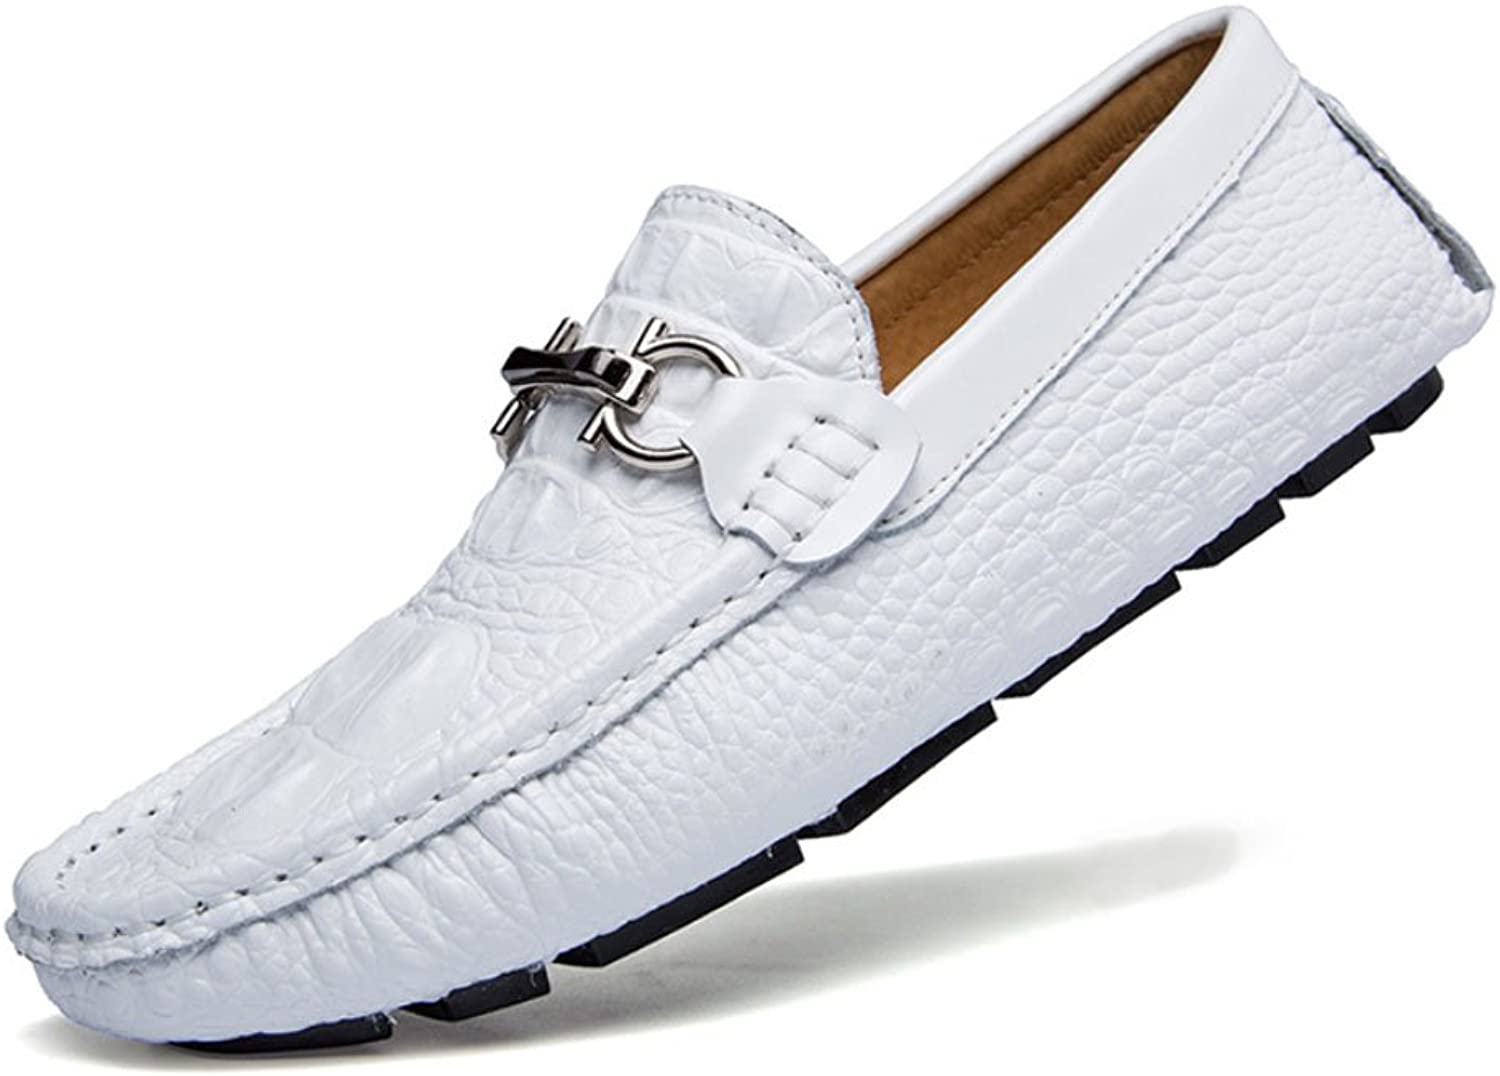 HAOYUXIANG Outdoor Leisure driving shoes trend lazy shoes male shoes British leather alligator bean shoes (color   White, Size   40)